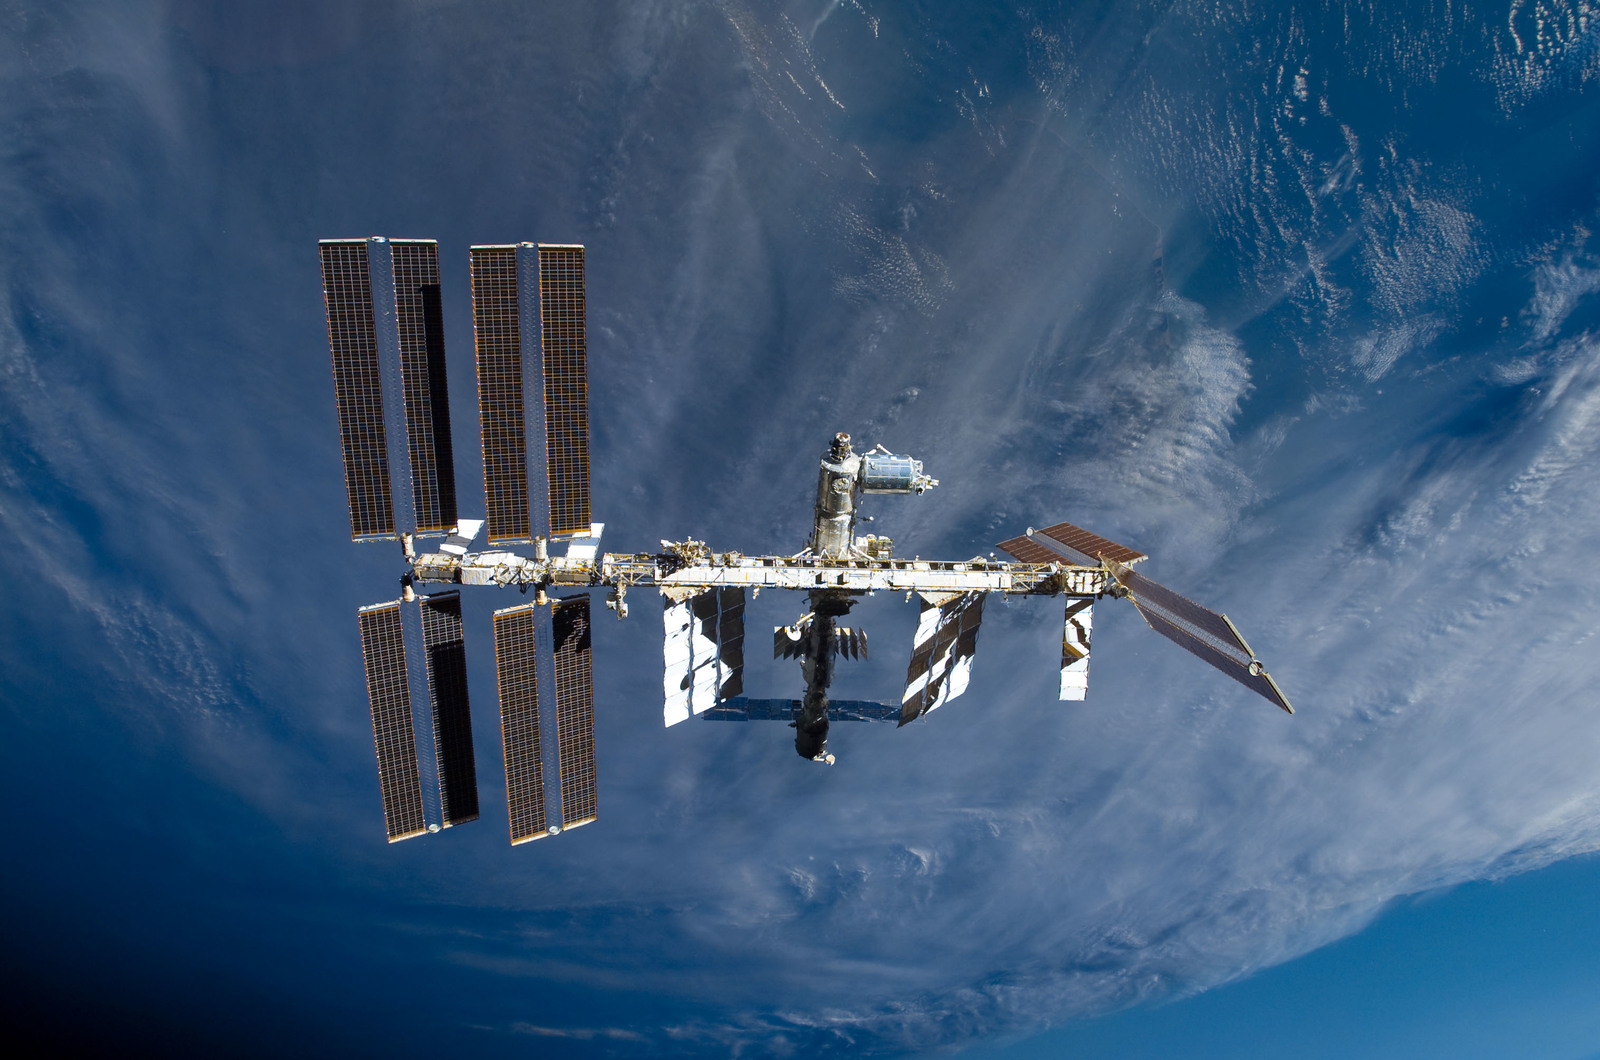 S122E009886 - STS-122 - View of ISS after STS-122 Undocking